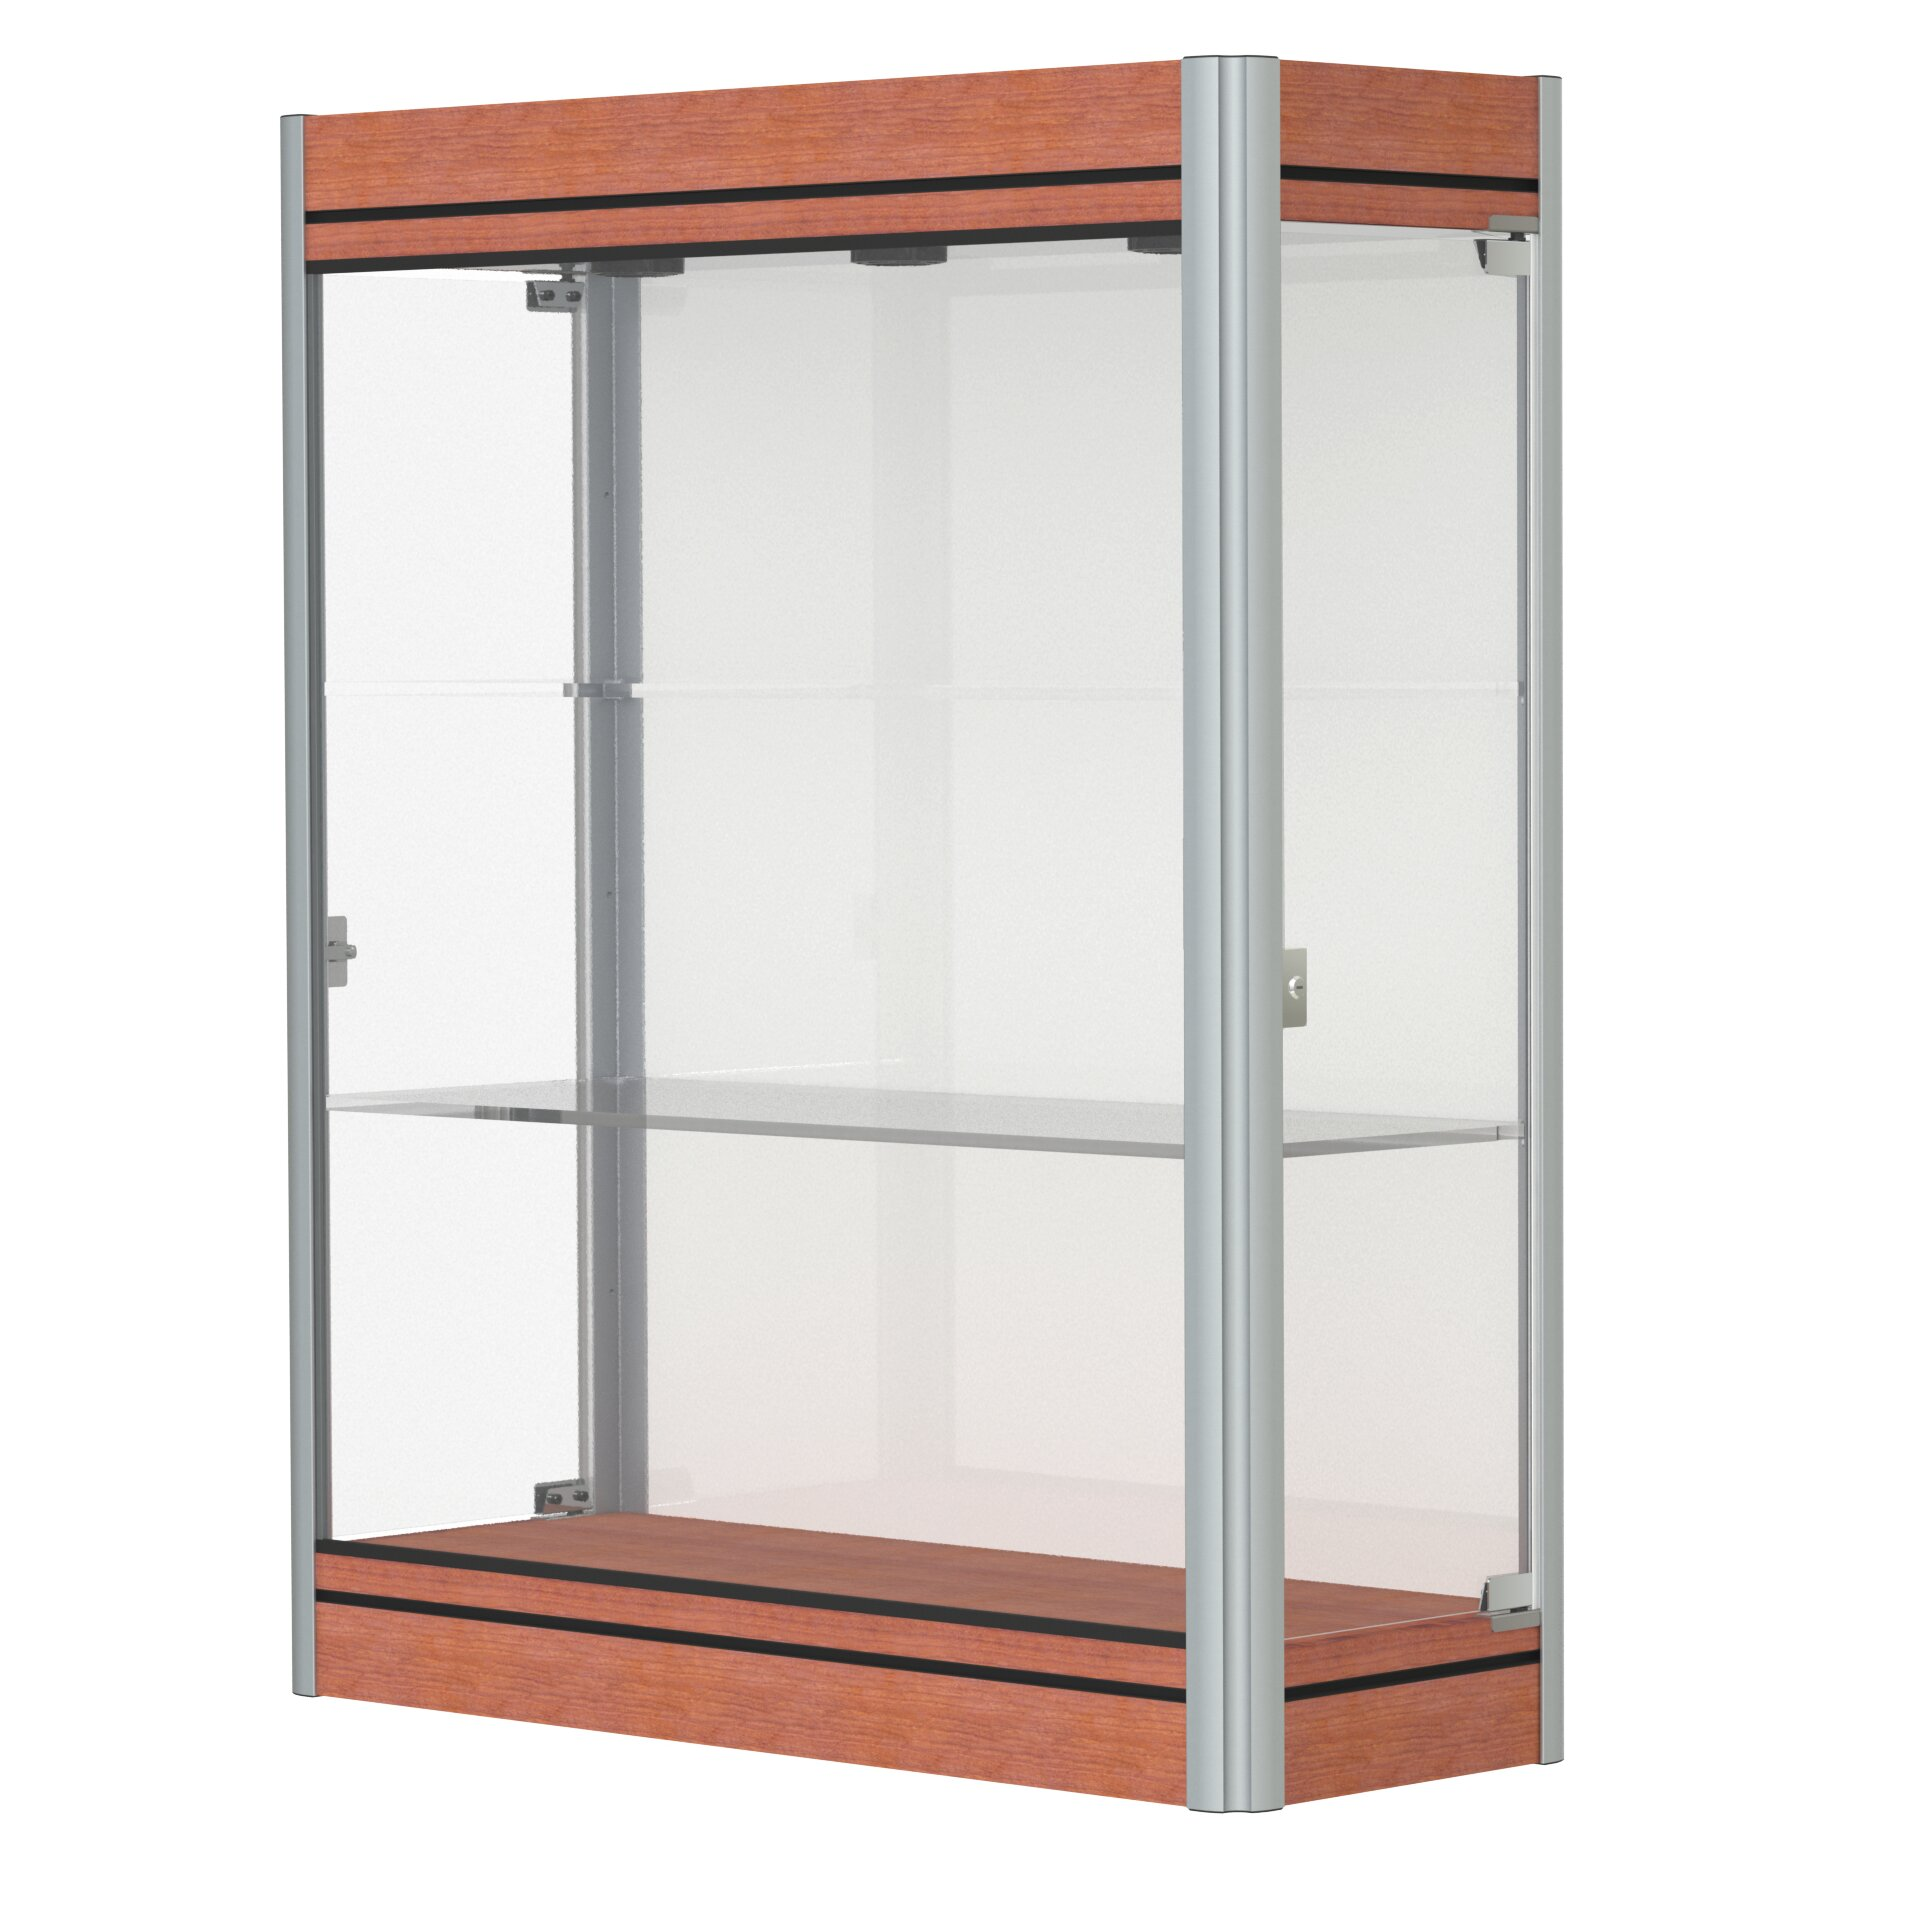 waddell contempo series lighted wall display case. Black Bedroom Furniture Sets. Home Design Ideas